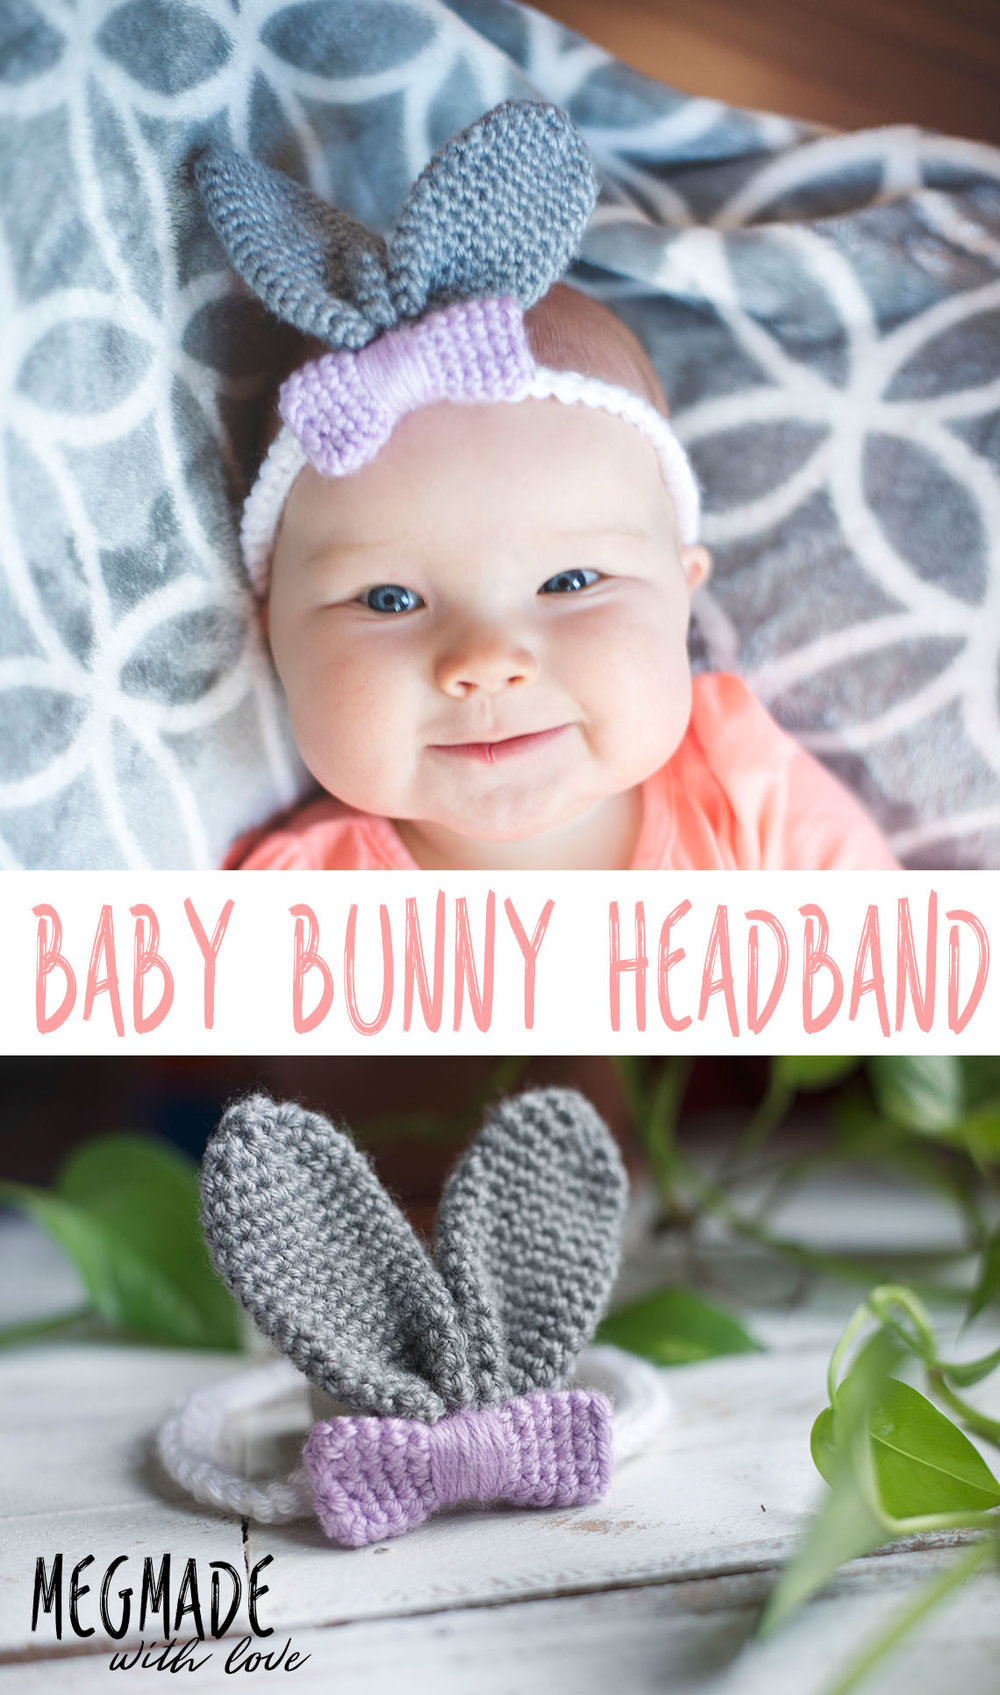 Baby Bunny Ears Headband Crochet Pattern — Megmade with Love